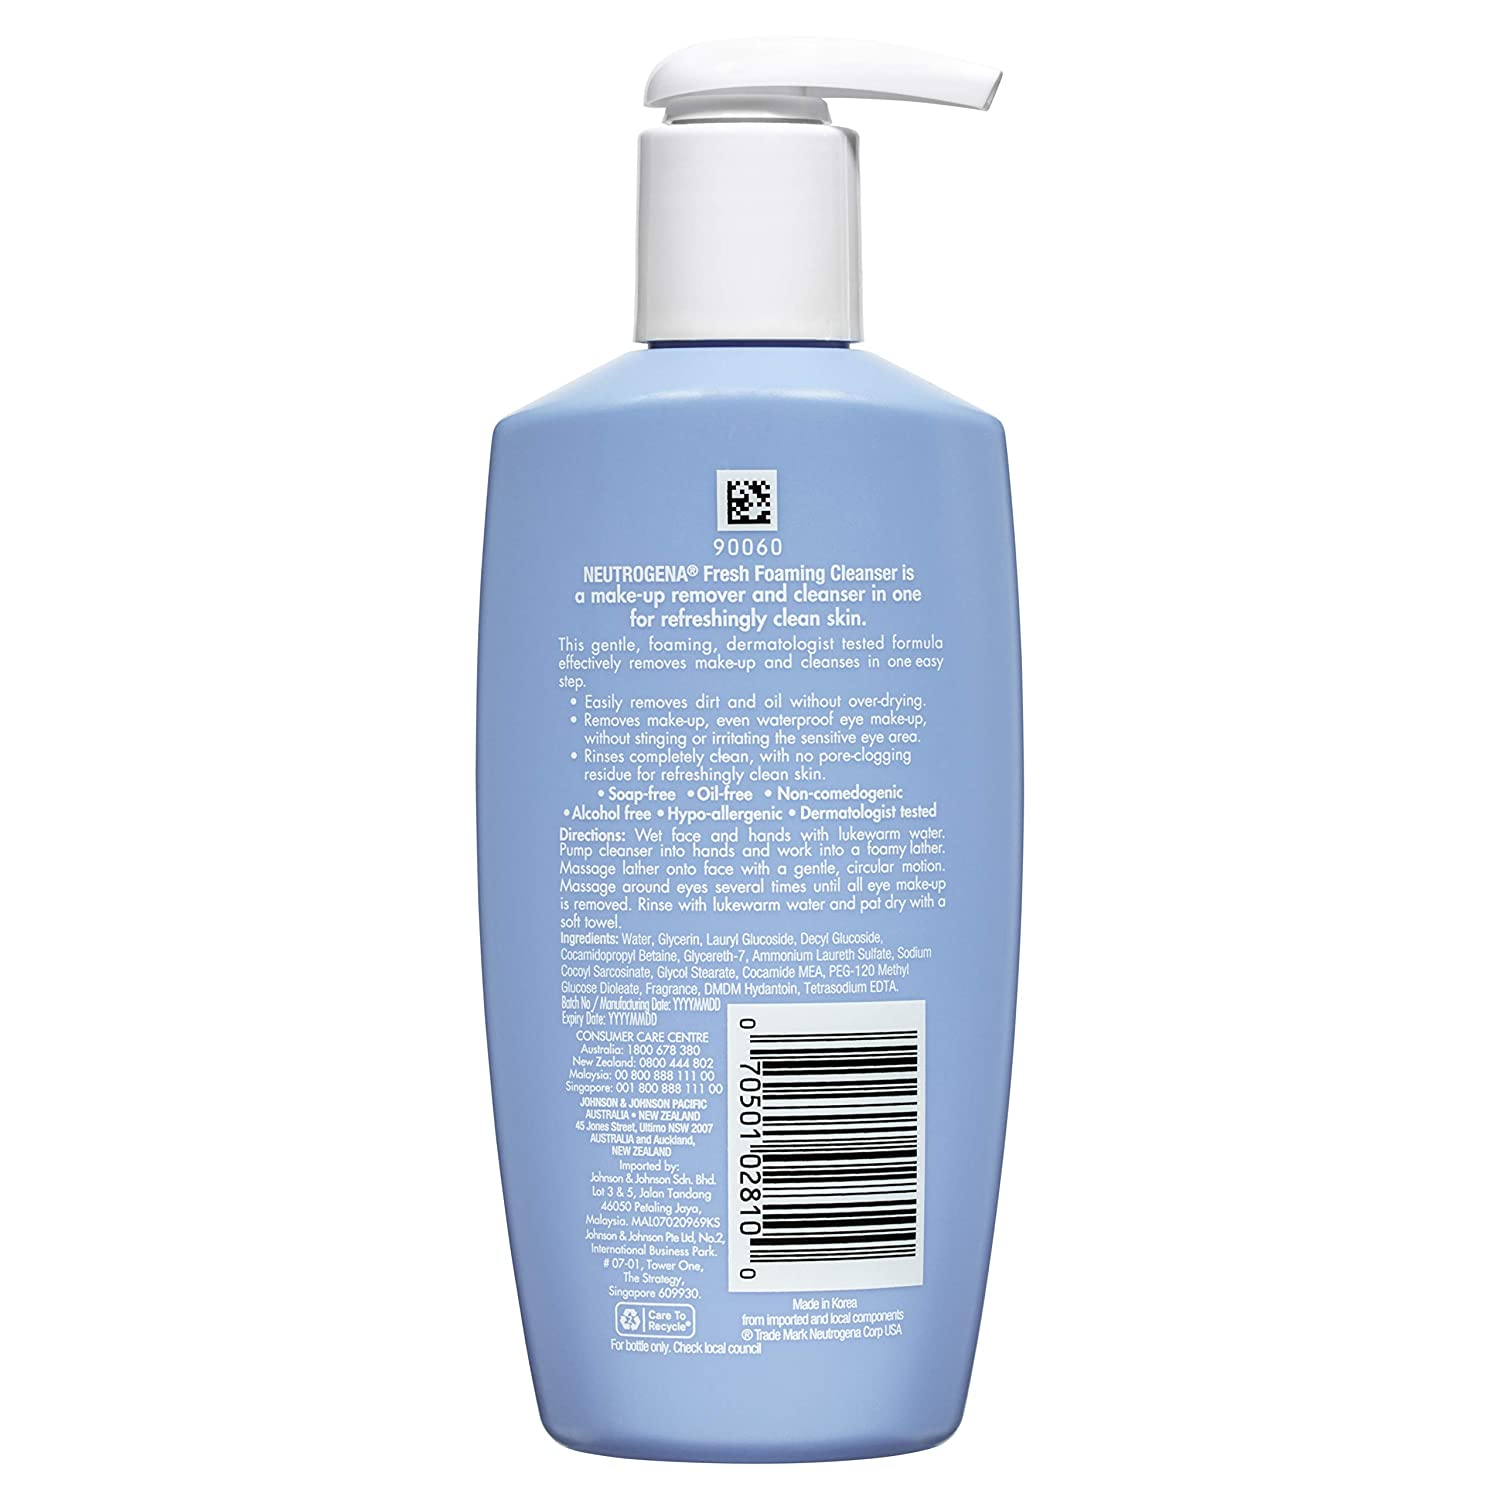 Neutrogena Fresh Foaming Facial Cleanser & Makeup Remover with Glycerin,  Oil-, Soap- & Alcohol-Free Daily Face Wash Removes Dirt, Oil & Waterproof